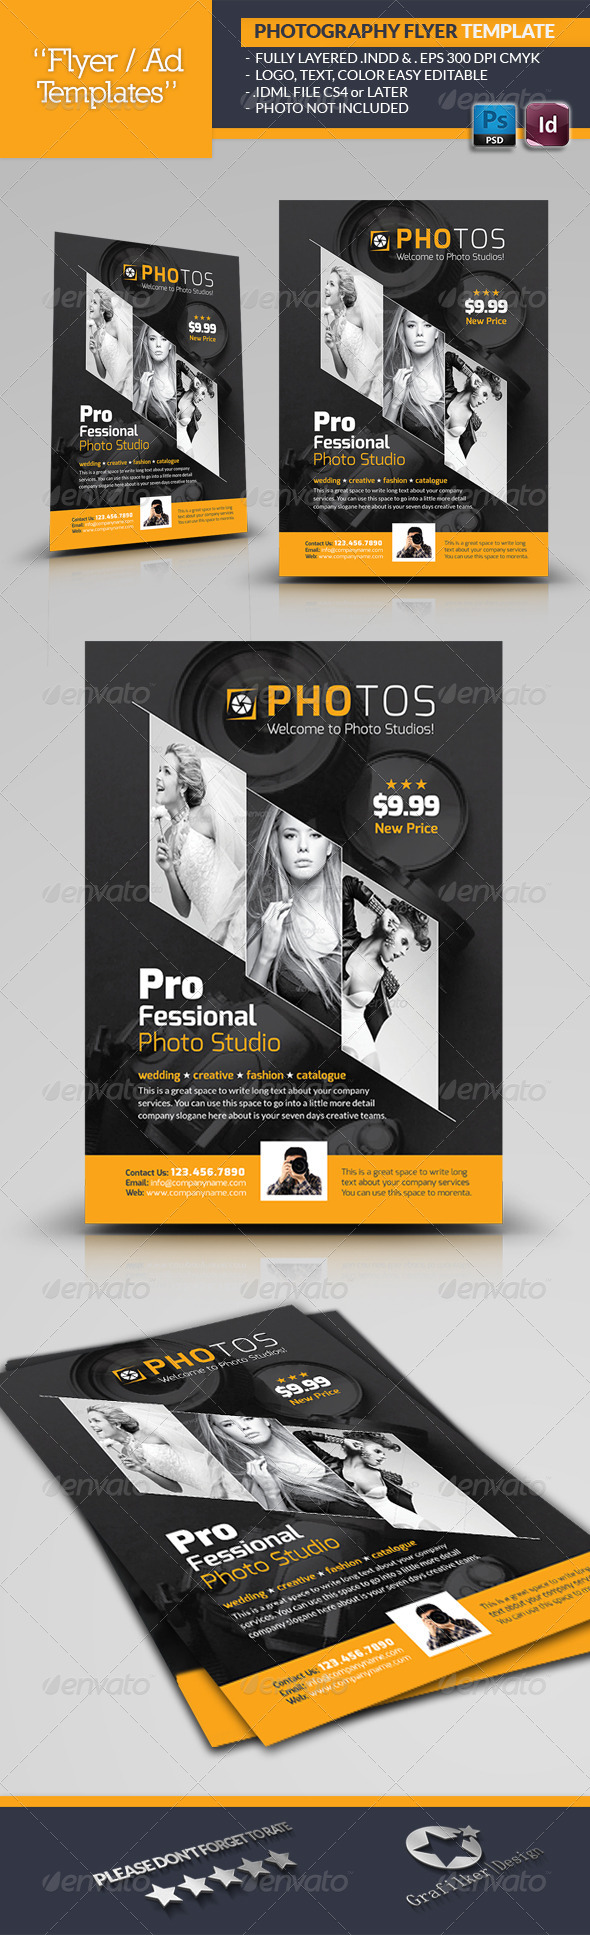 GraphicRiver Photography Flyer Template 6617901